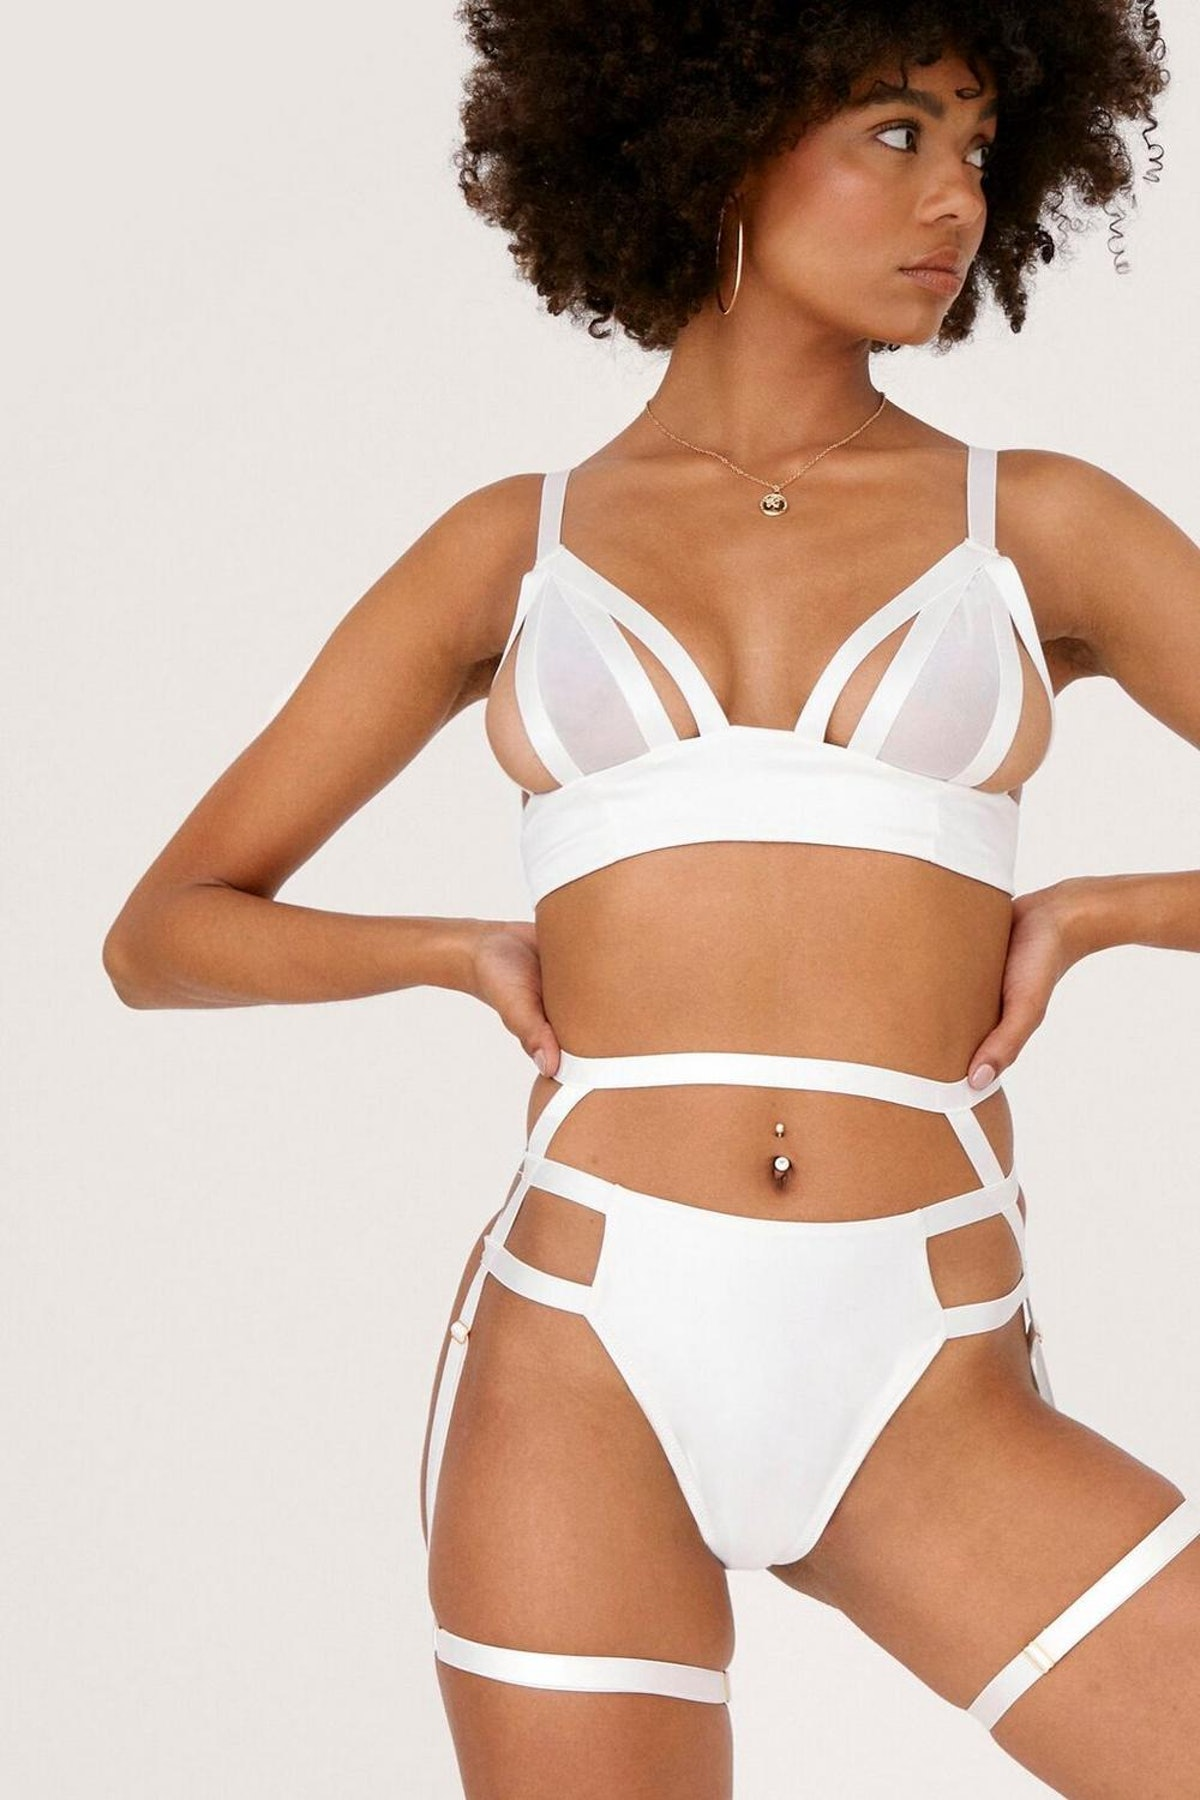 Nasty Gal x Tayce Strappy 3 Pc Bralette Thong and Harness Set